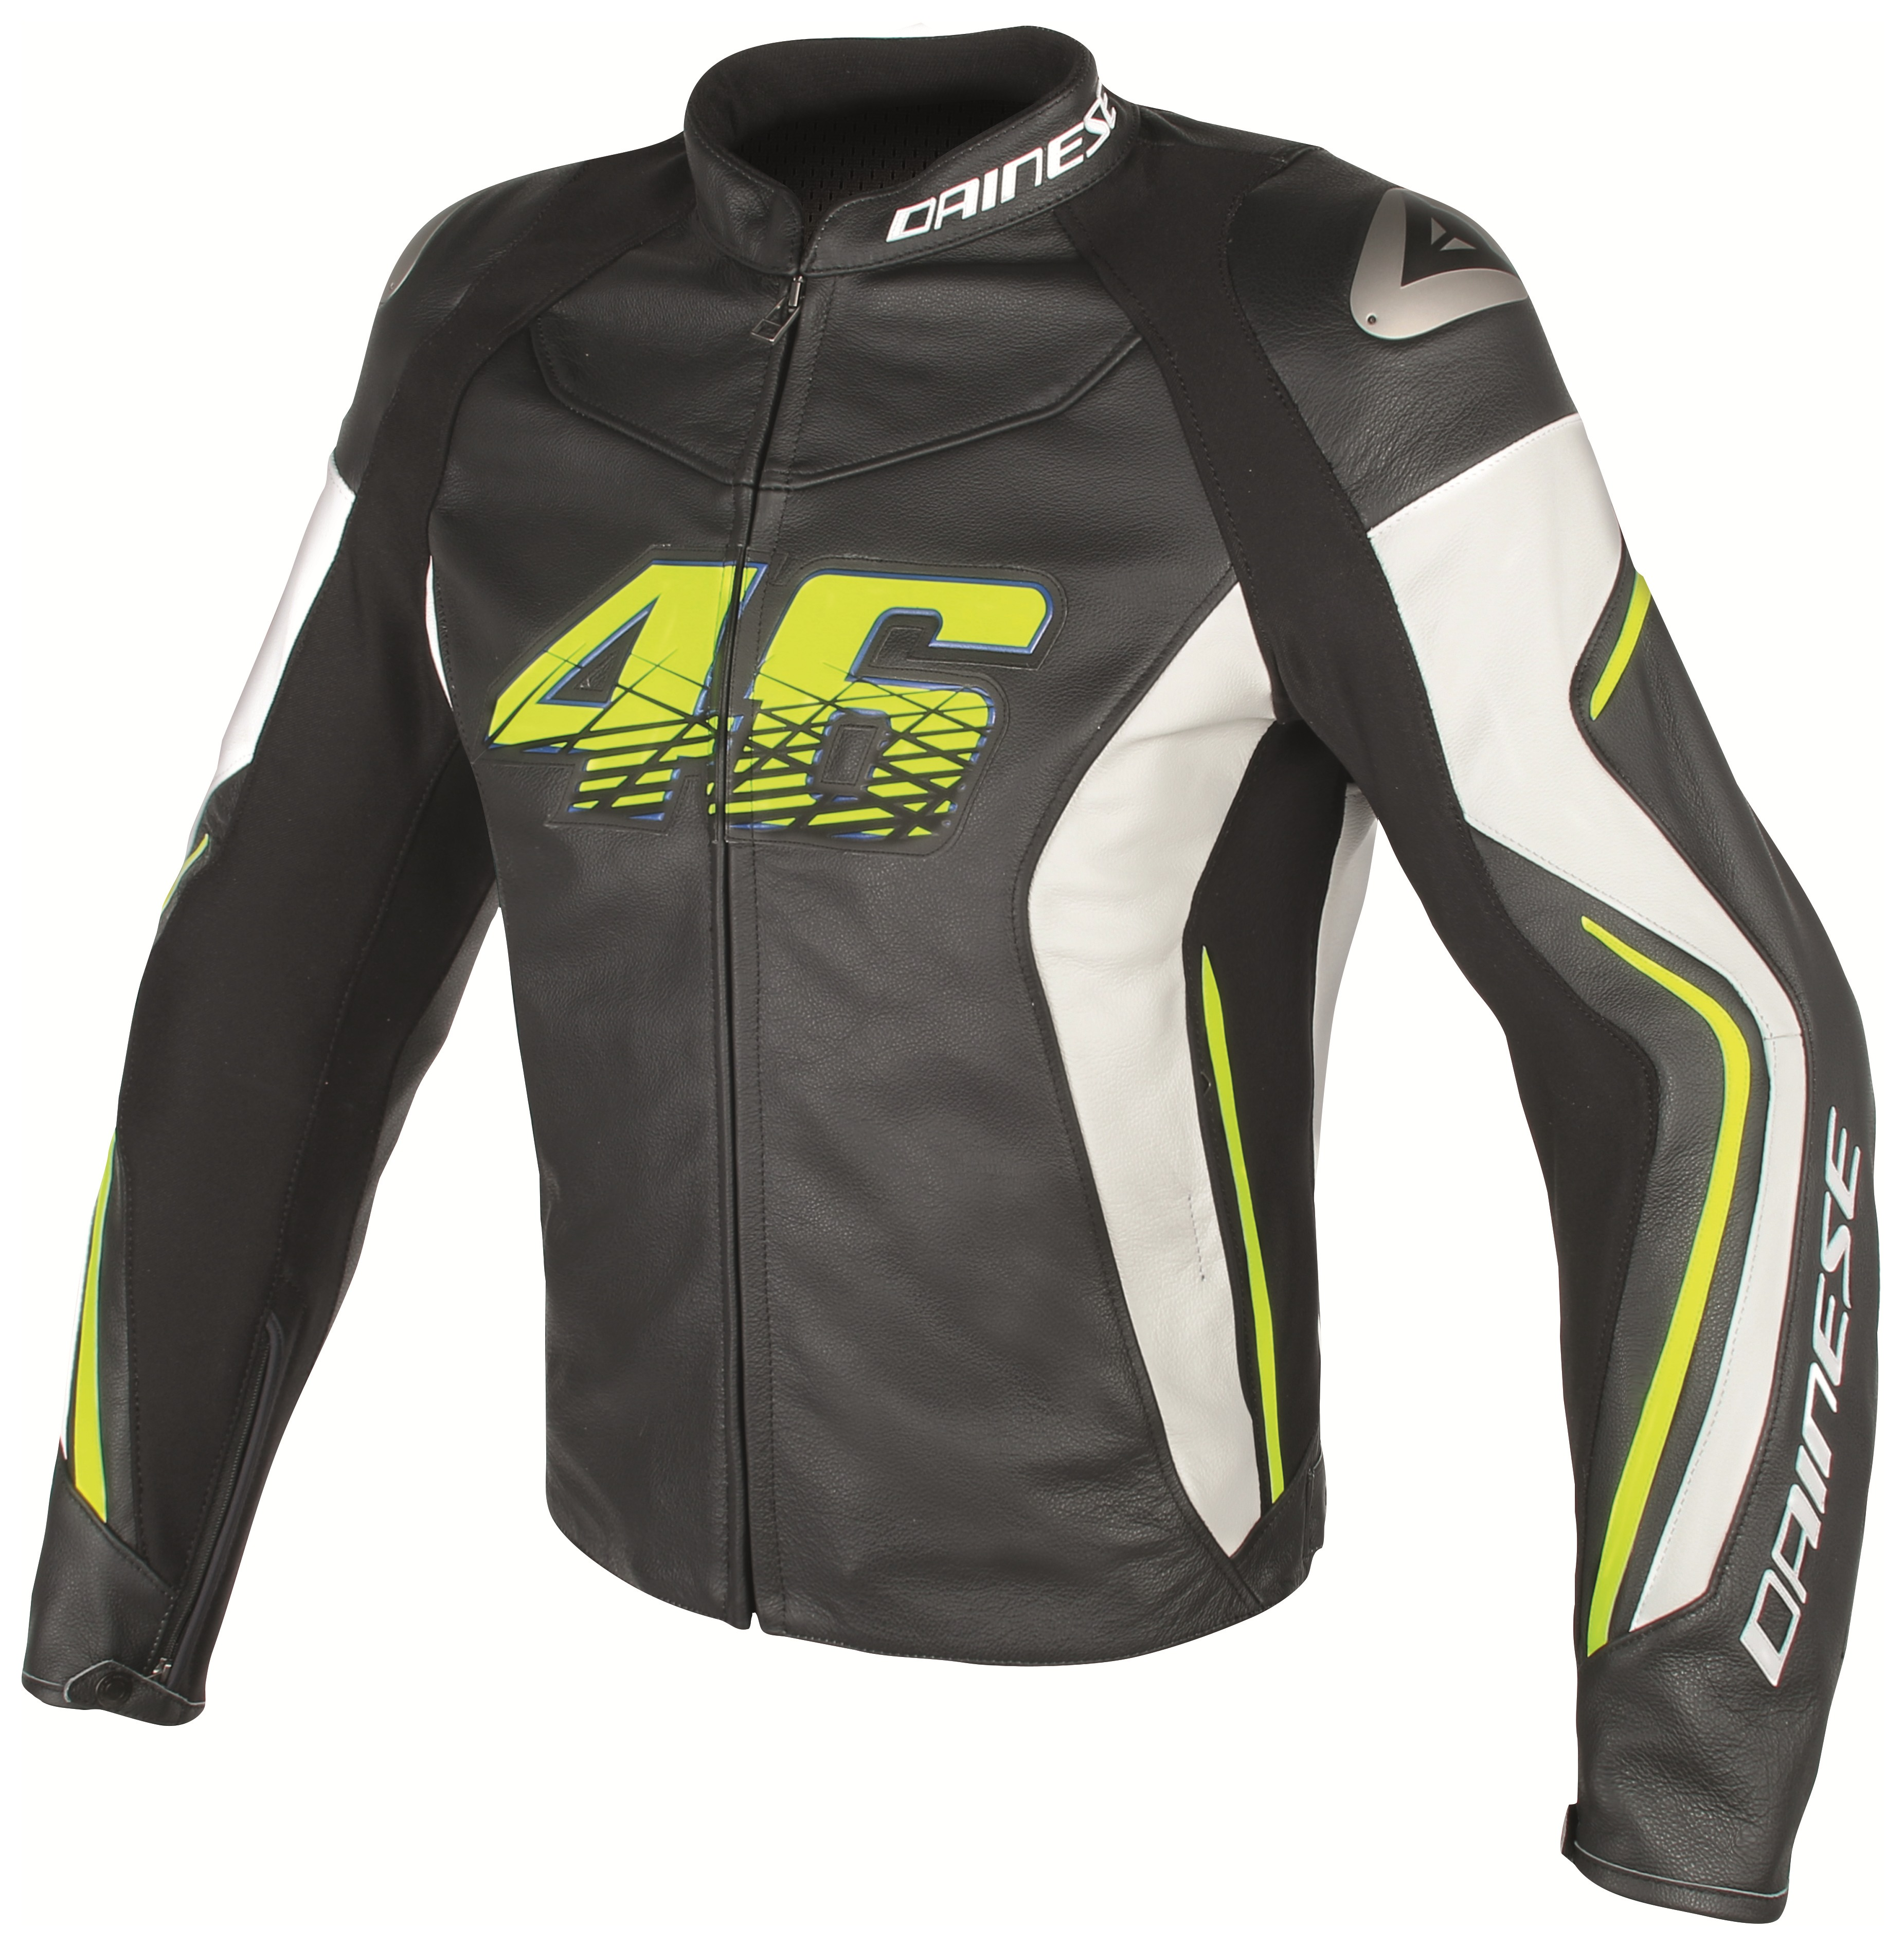 Dainese vr46 d2 leather jacket 20 off revzilla for D garage dainese corbeil horaires